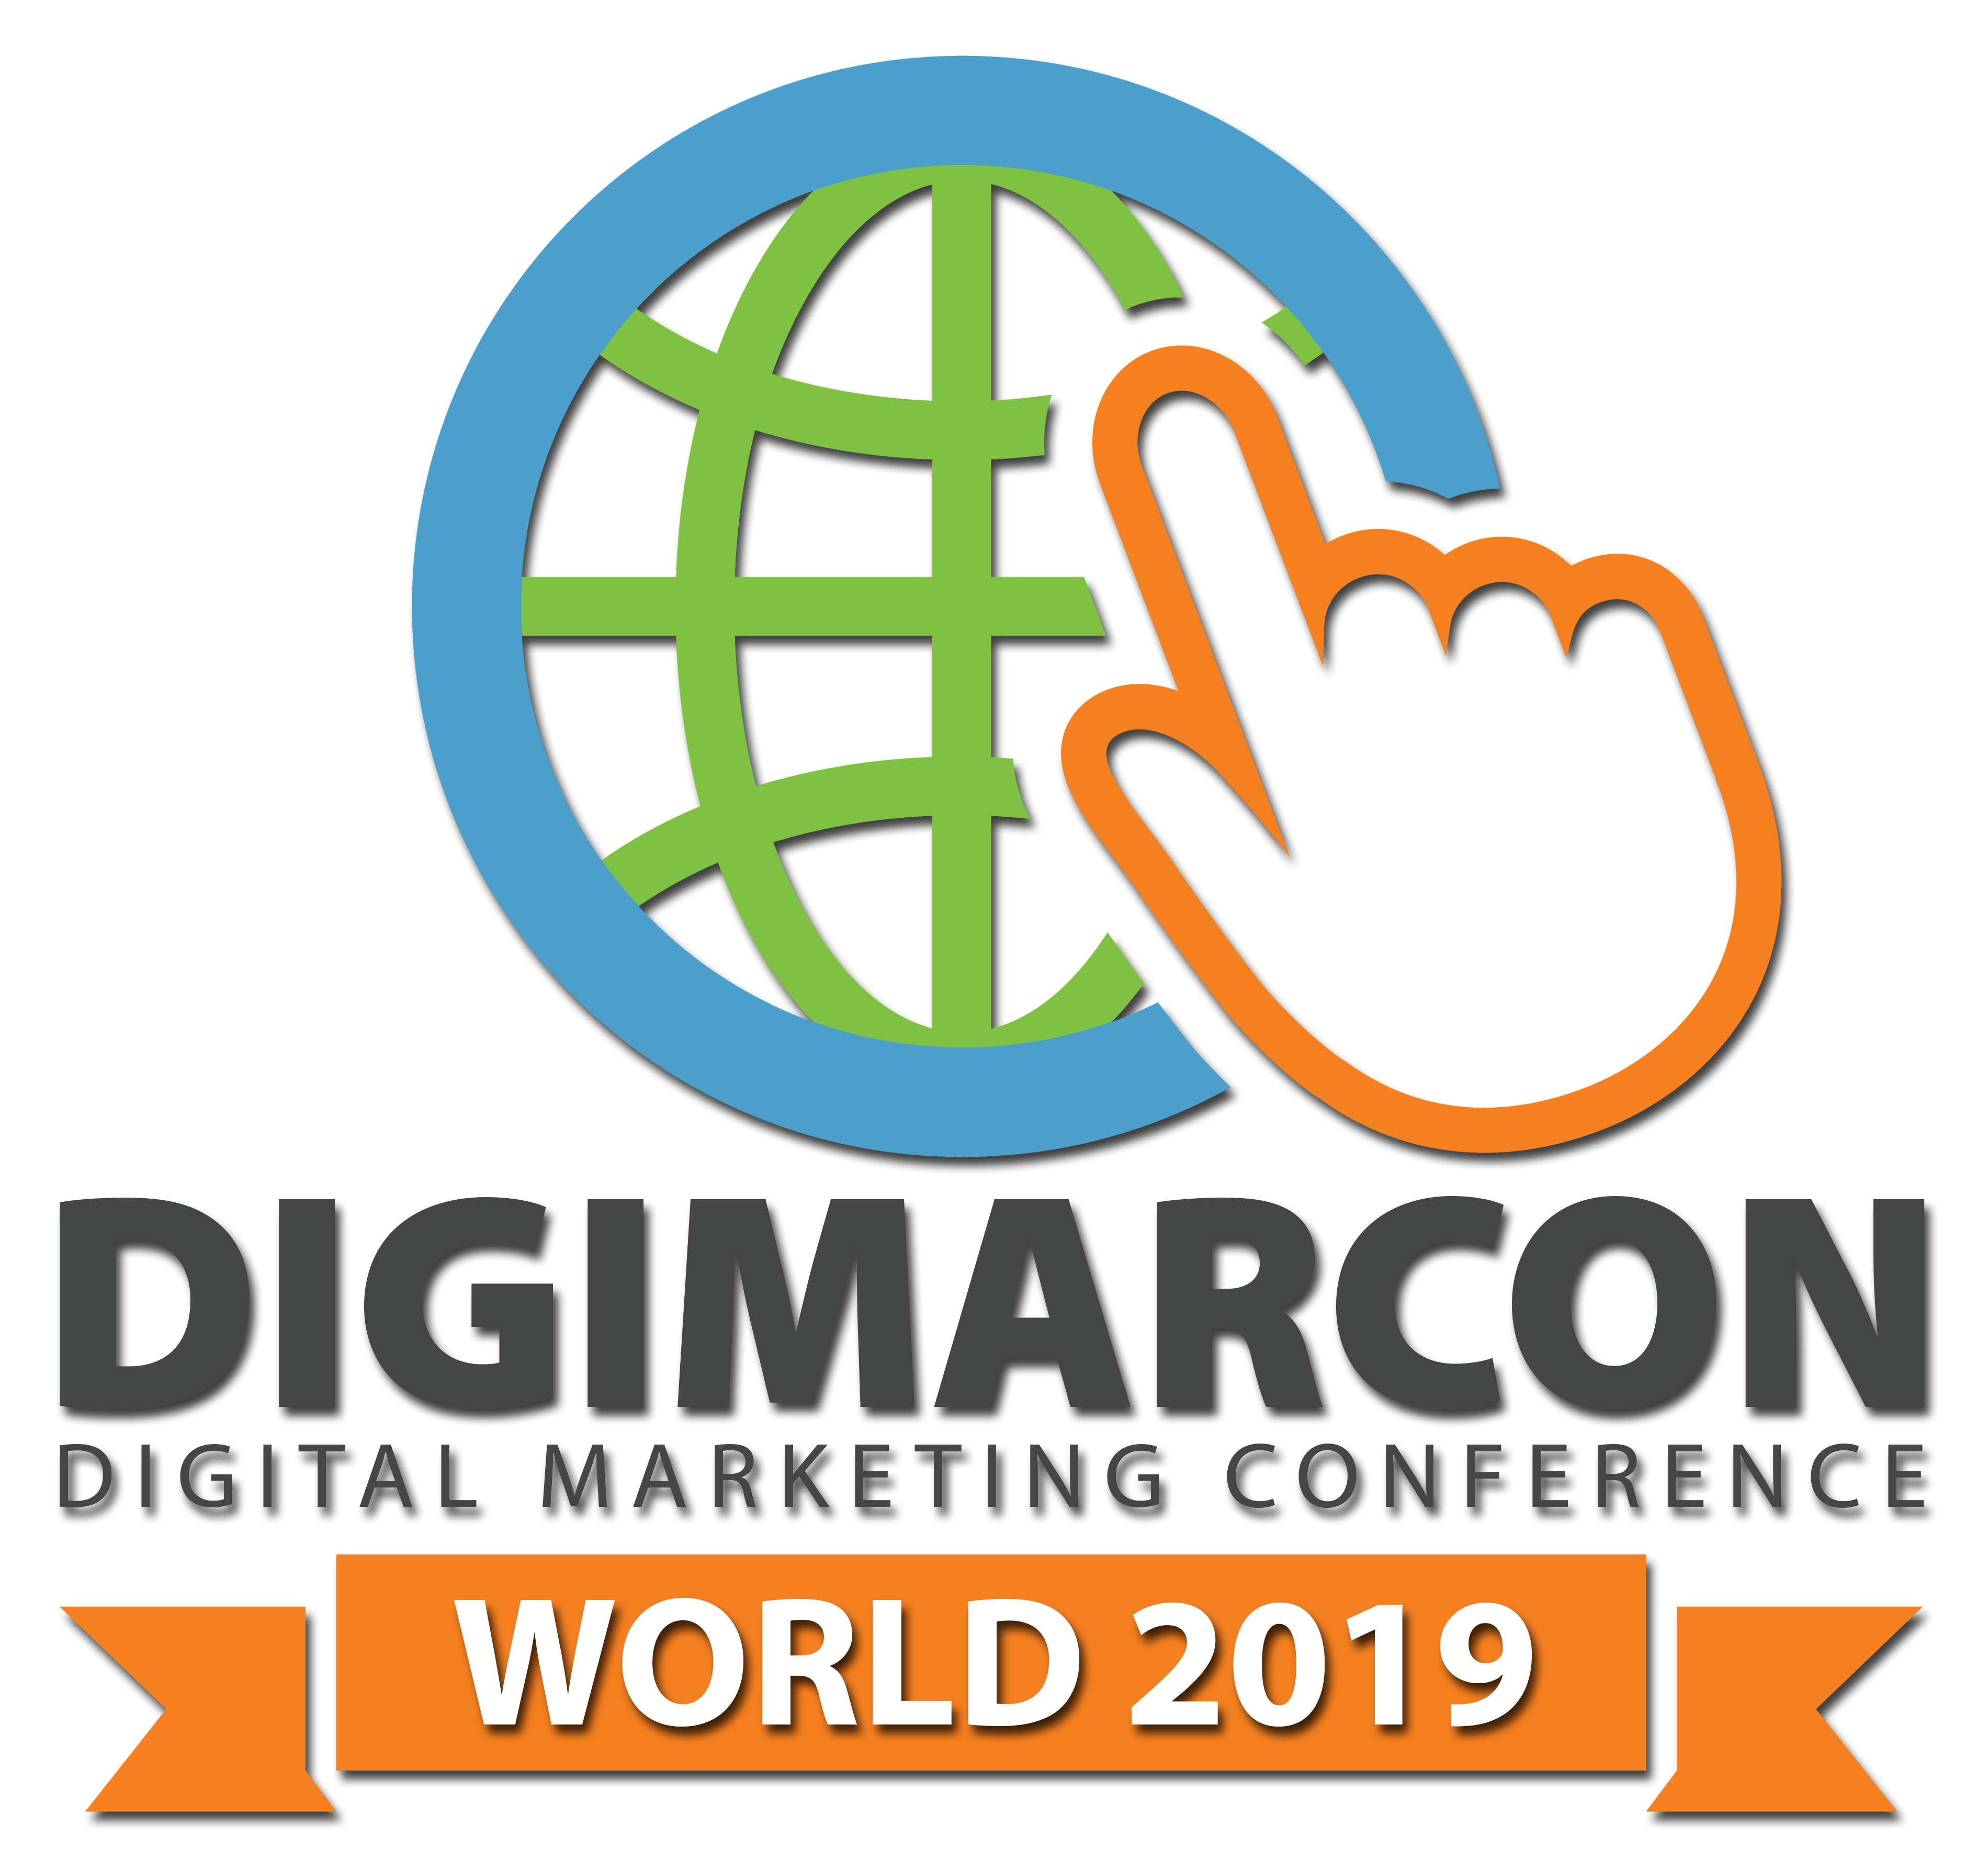 DigiMarCon World 2019 | November 19-21